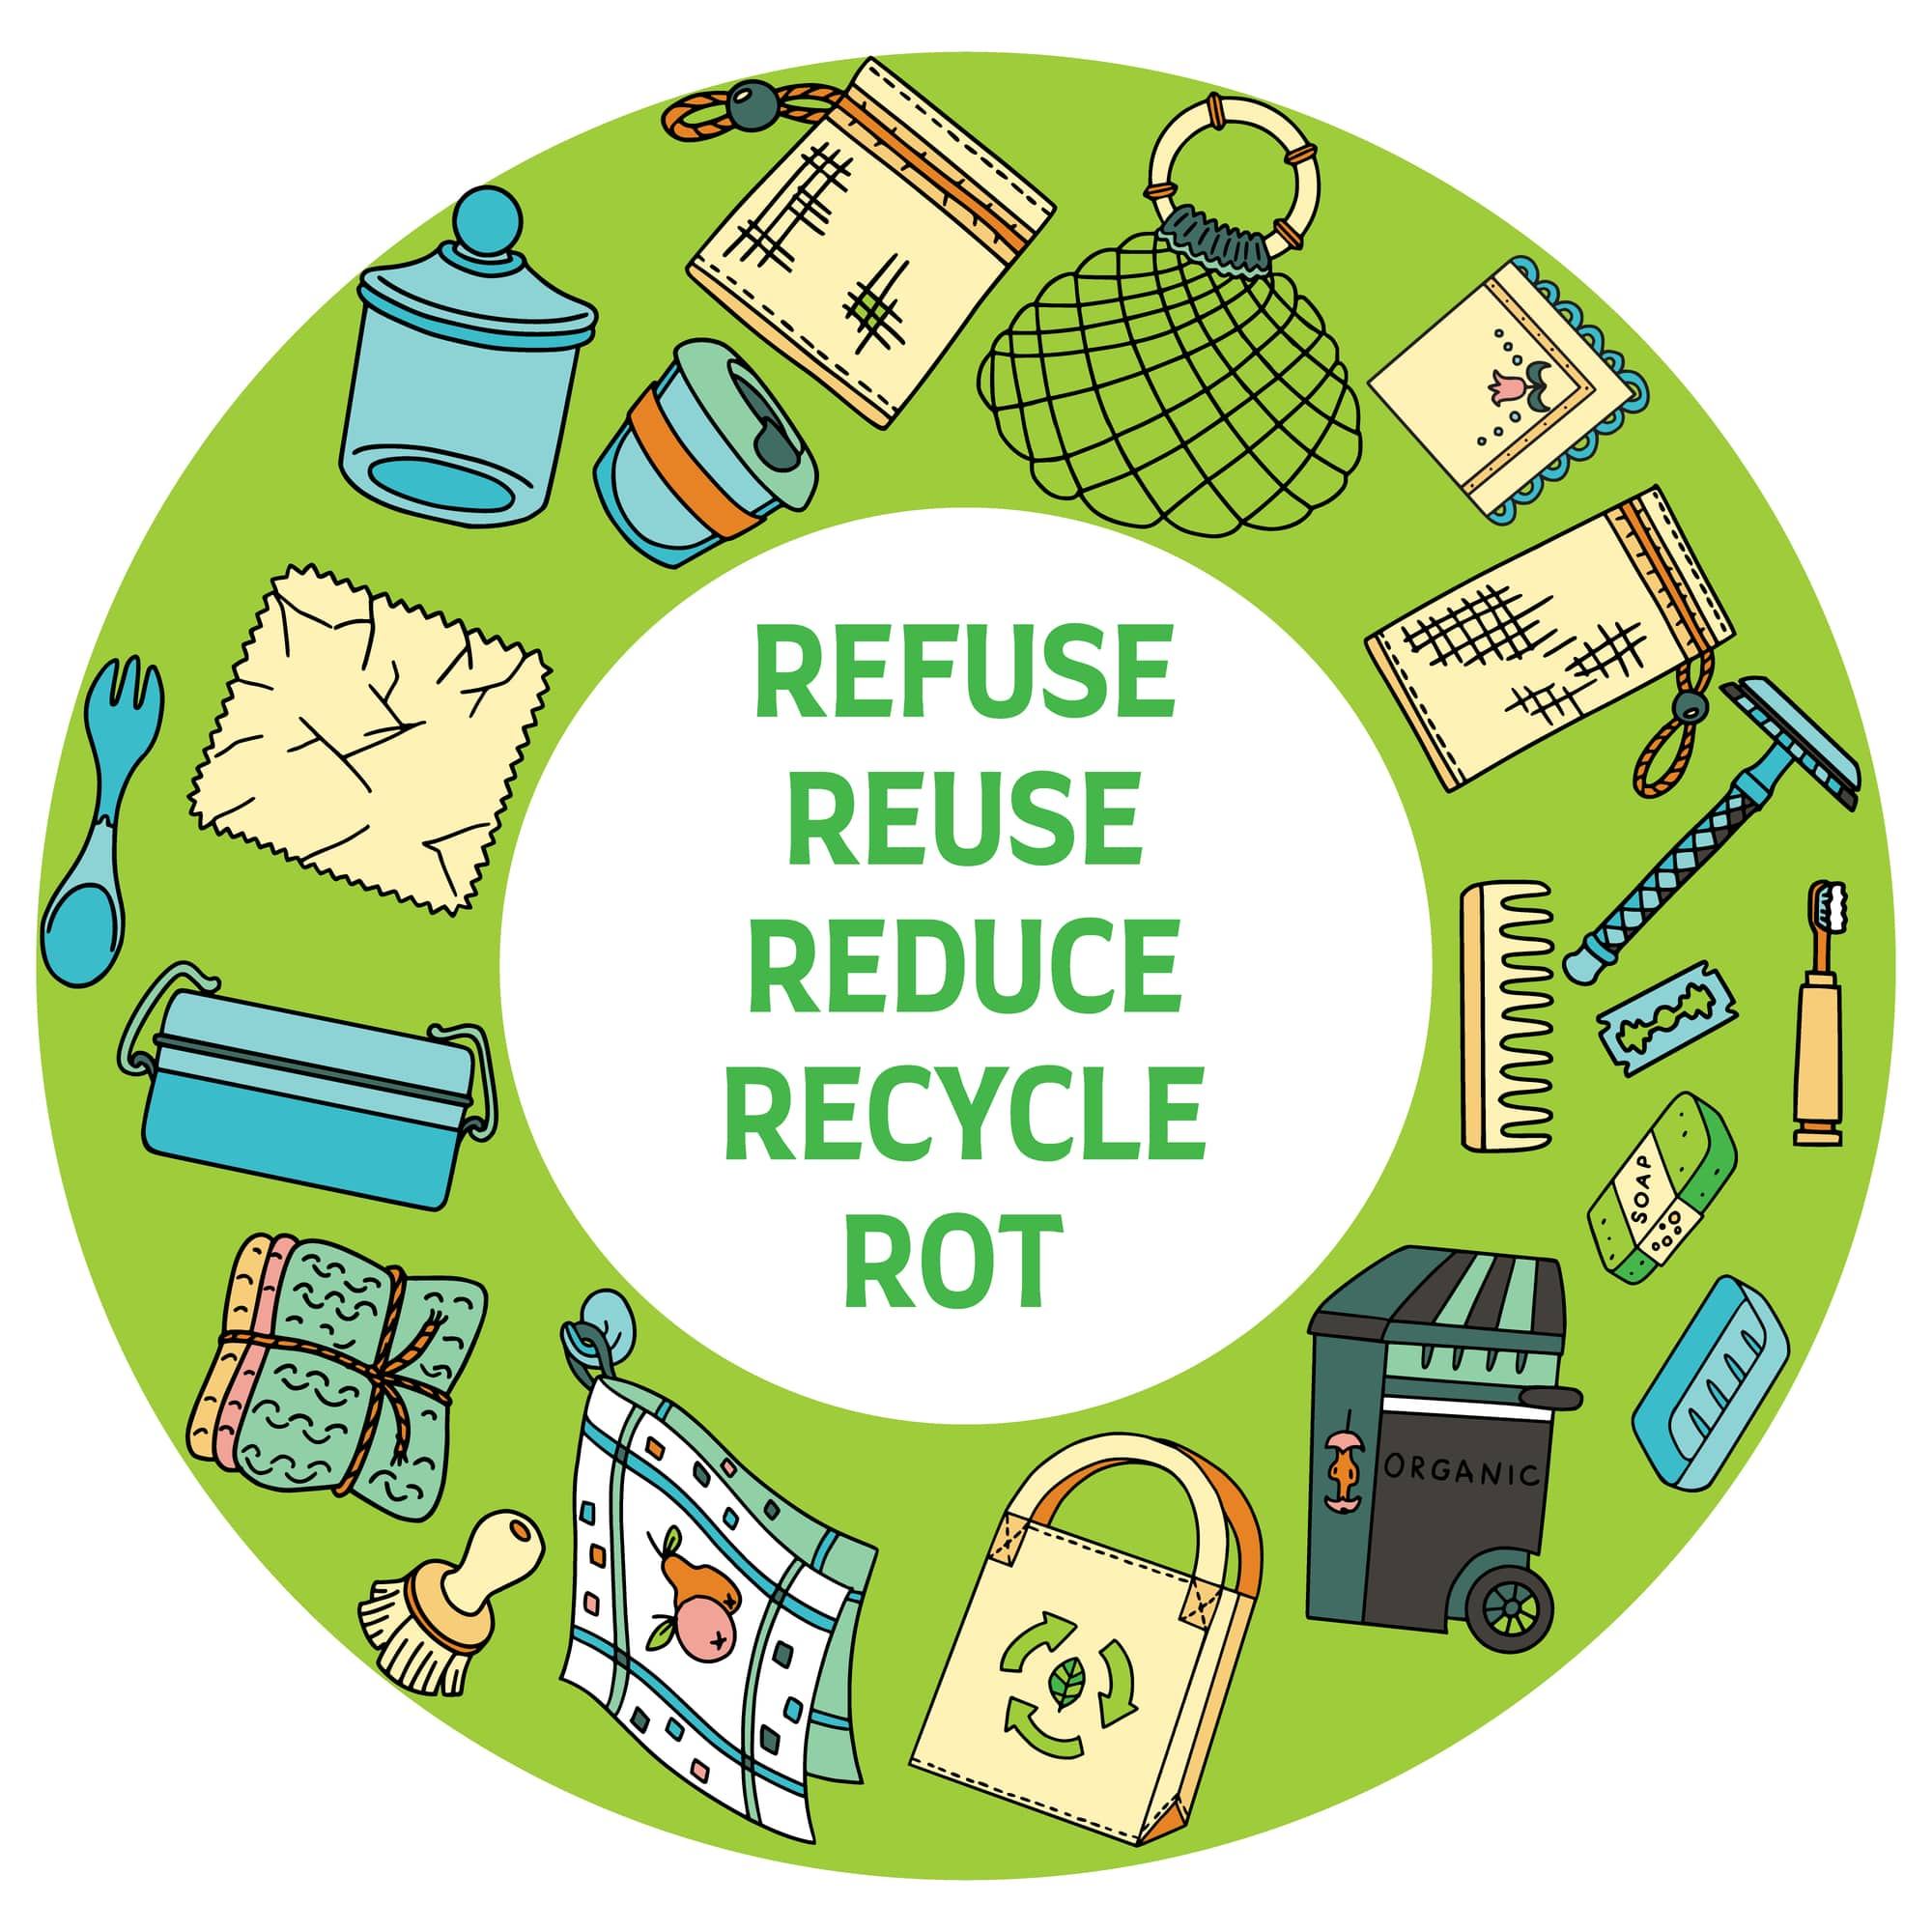 refuse-reduce-rot-recycle